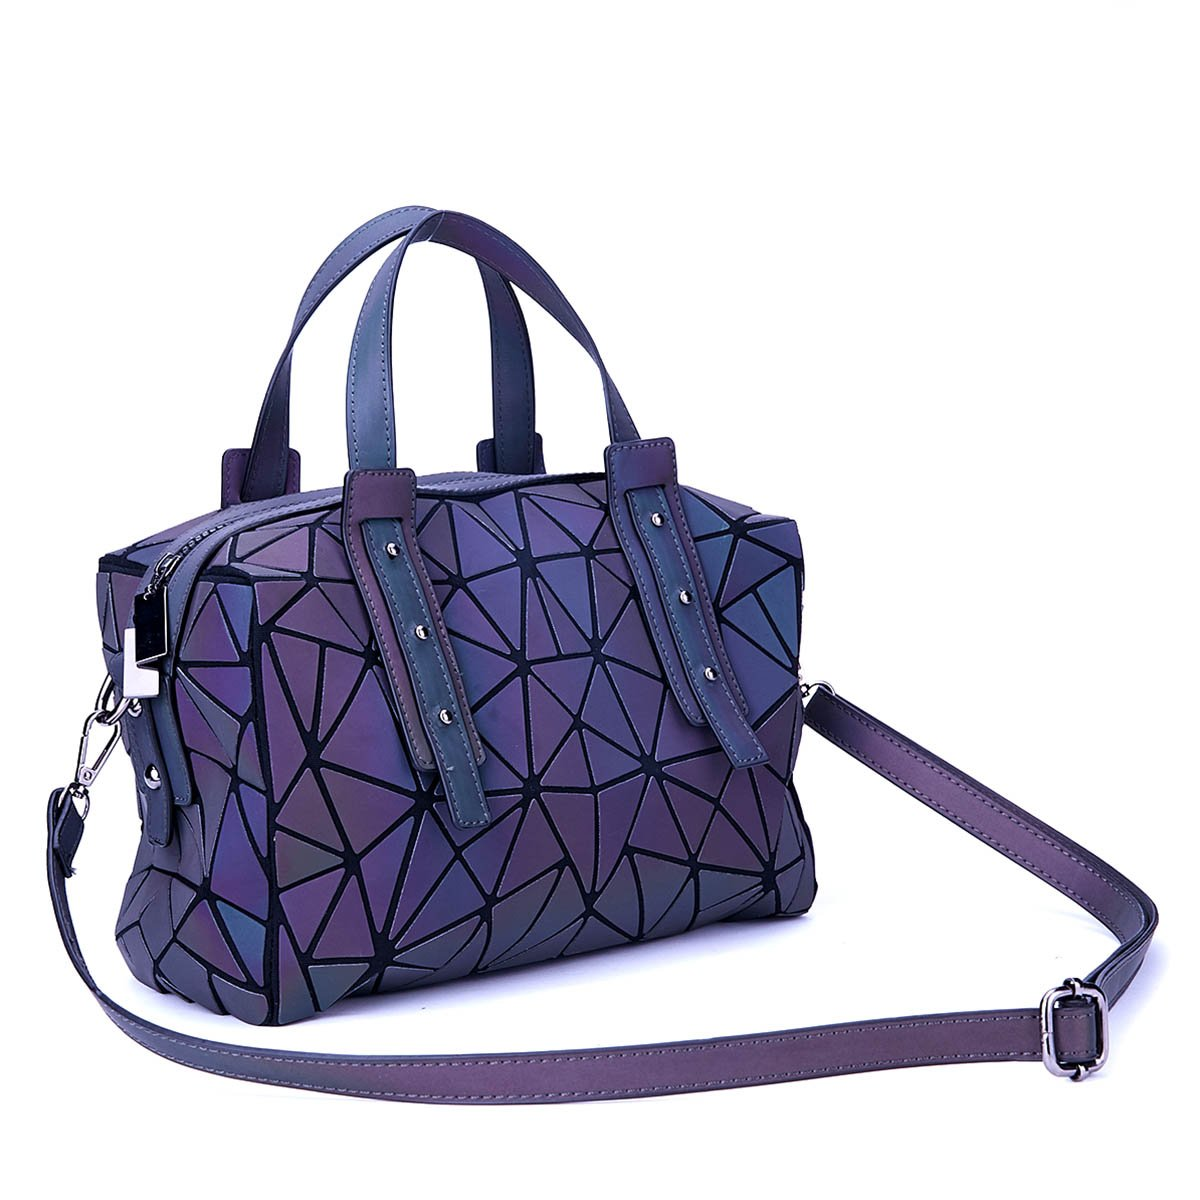 Harlermoon Geometric Holographic Luminesk Purses Satchels Bags with Zipper Closure Reflective Handbags Medium Boston Bag